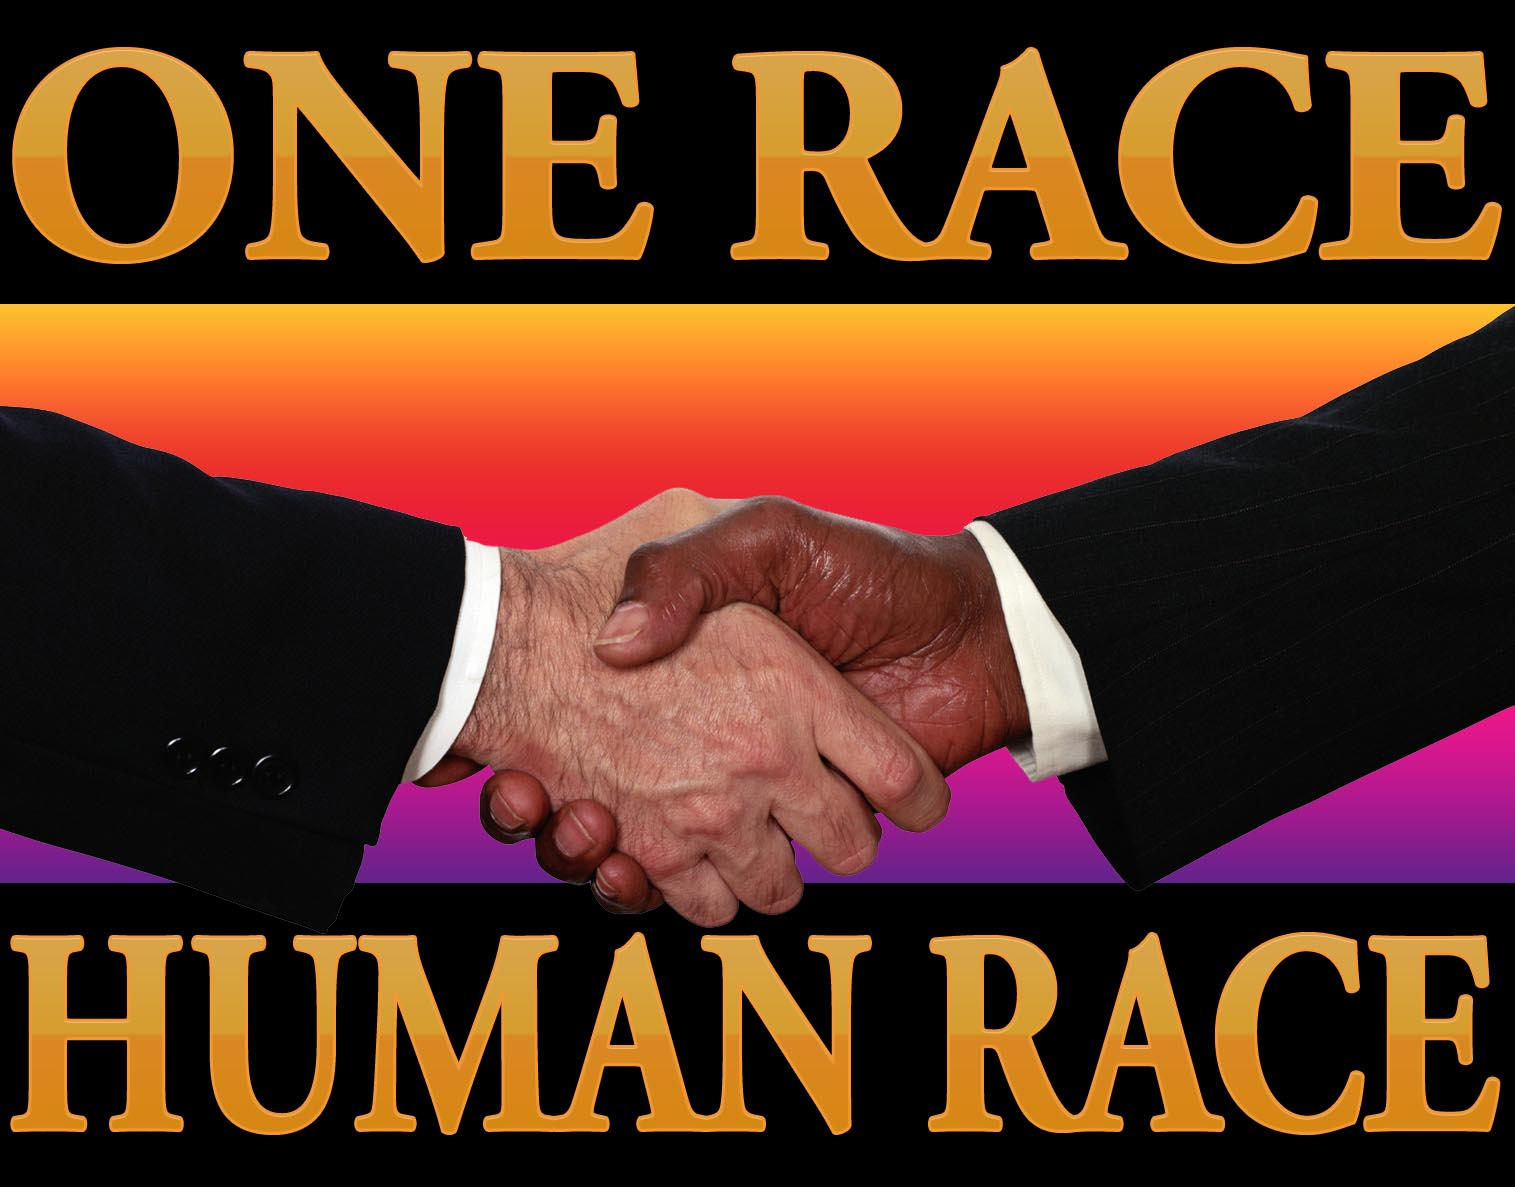 ONE RACE,THE HUMAN RACE